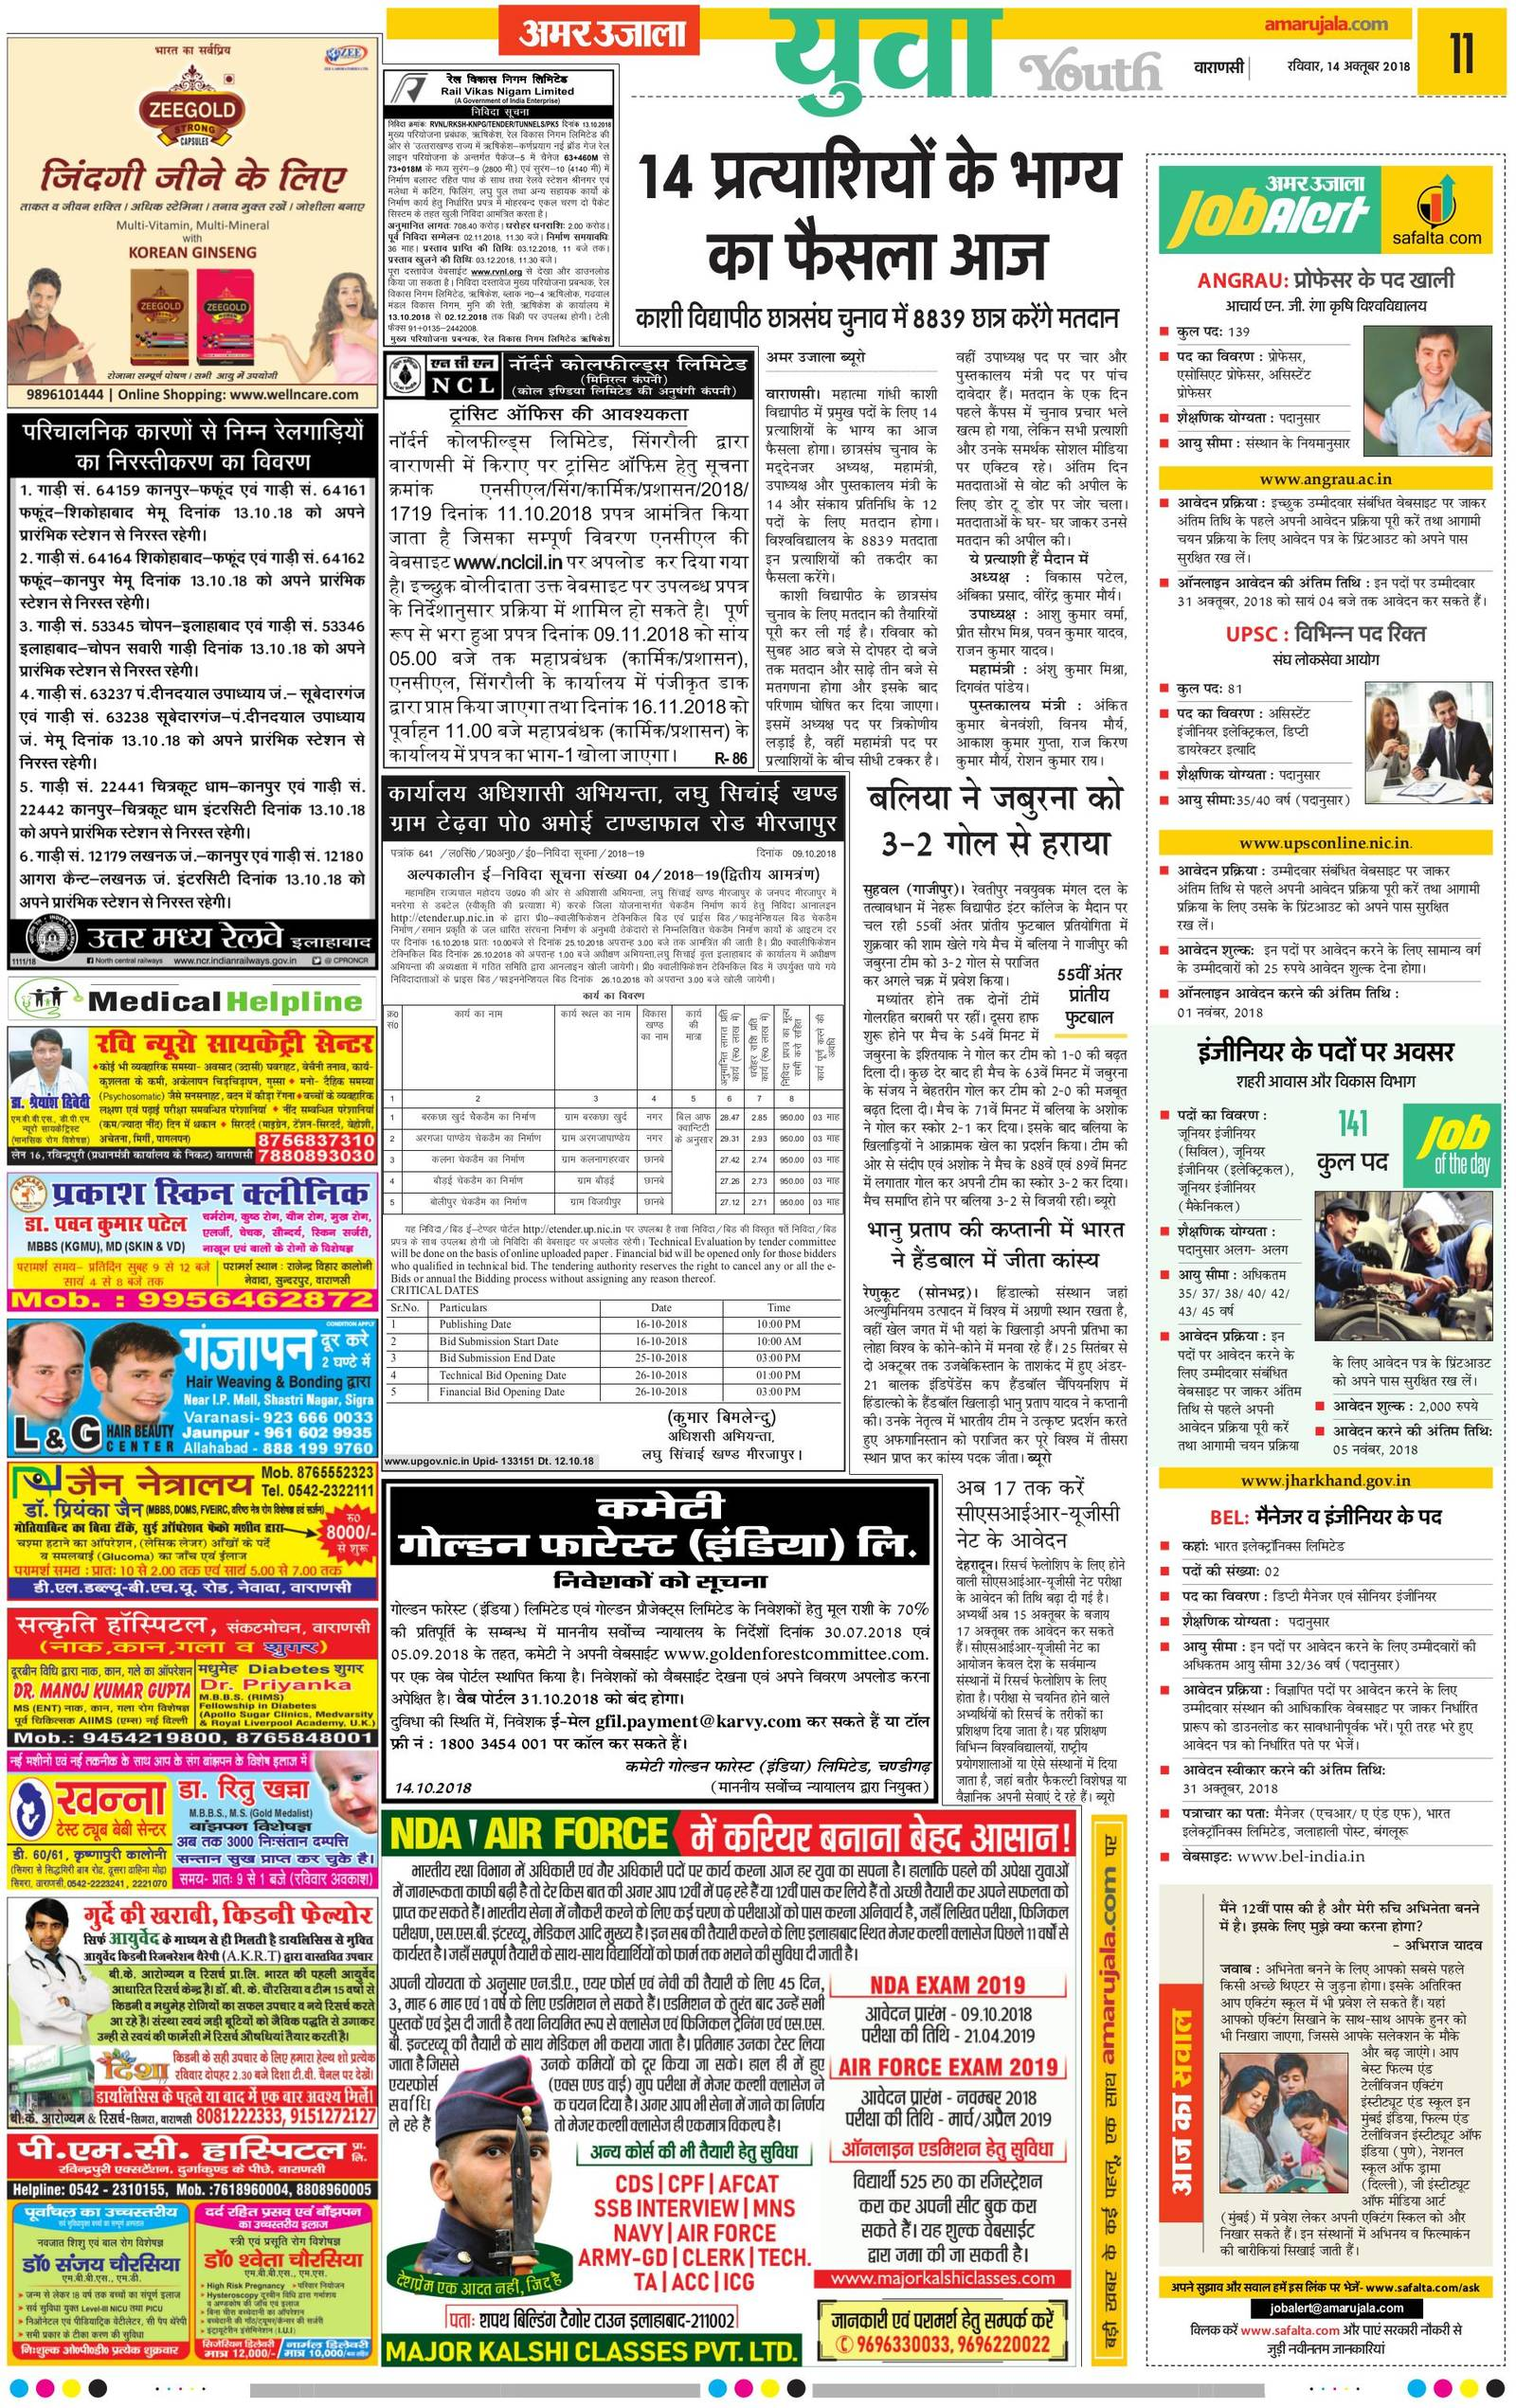 Amarujala Epaper Mau: Hindi E-paper, Today Mau Newspaper Online